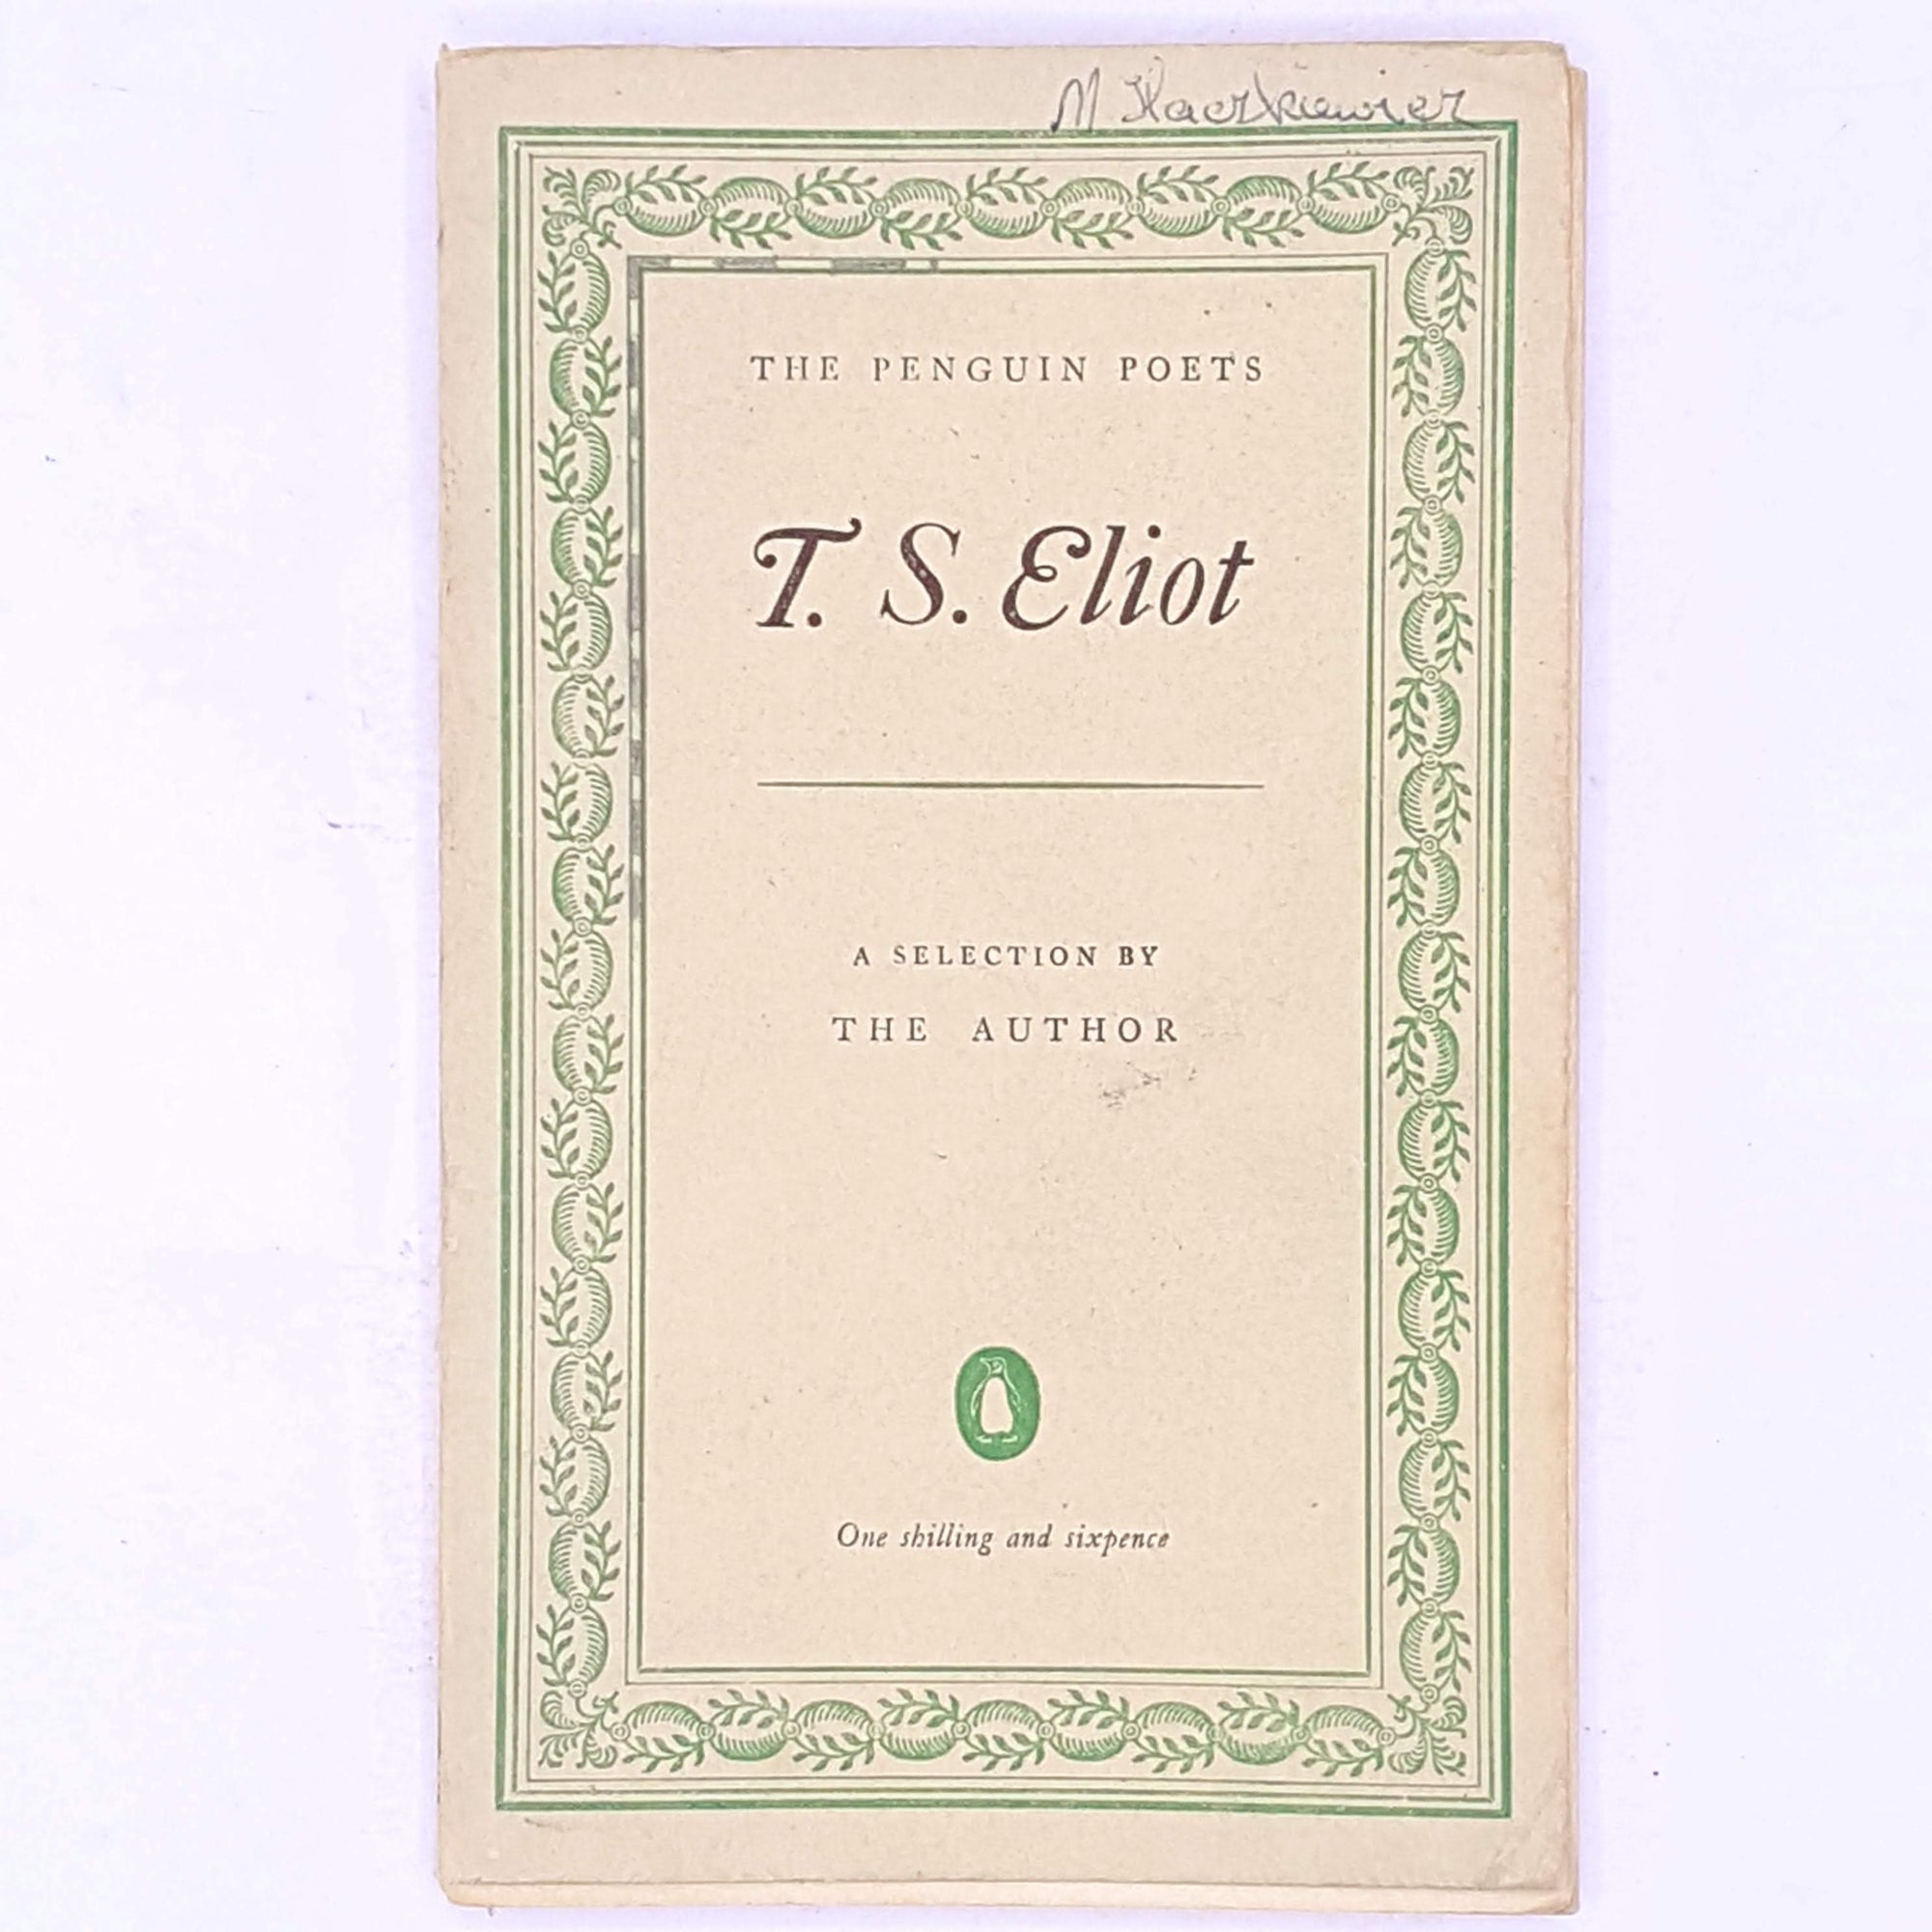 old-books-decorative-penguin-poems-poetry-poets- vintage-country-house-library-thrift-classic-patterned-T.S.-Eliot-the-penguin-poets-a-selection-by-the-author-antique-